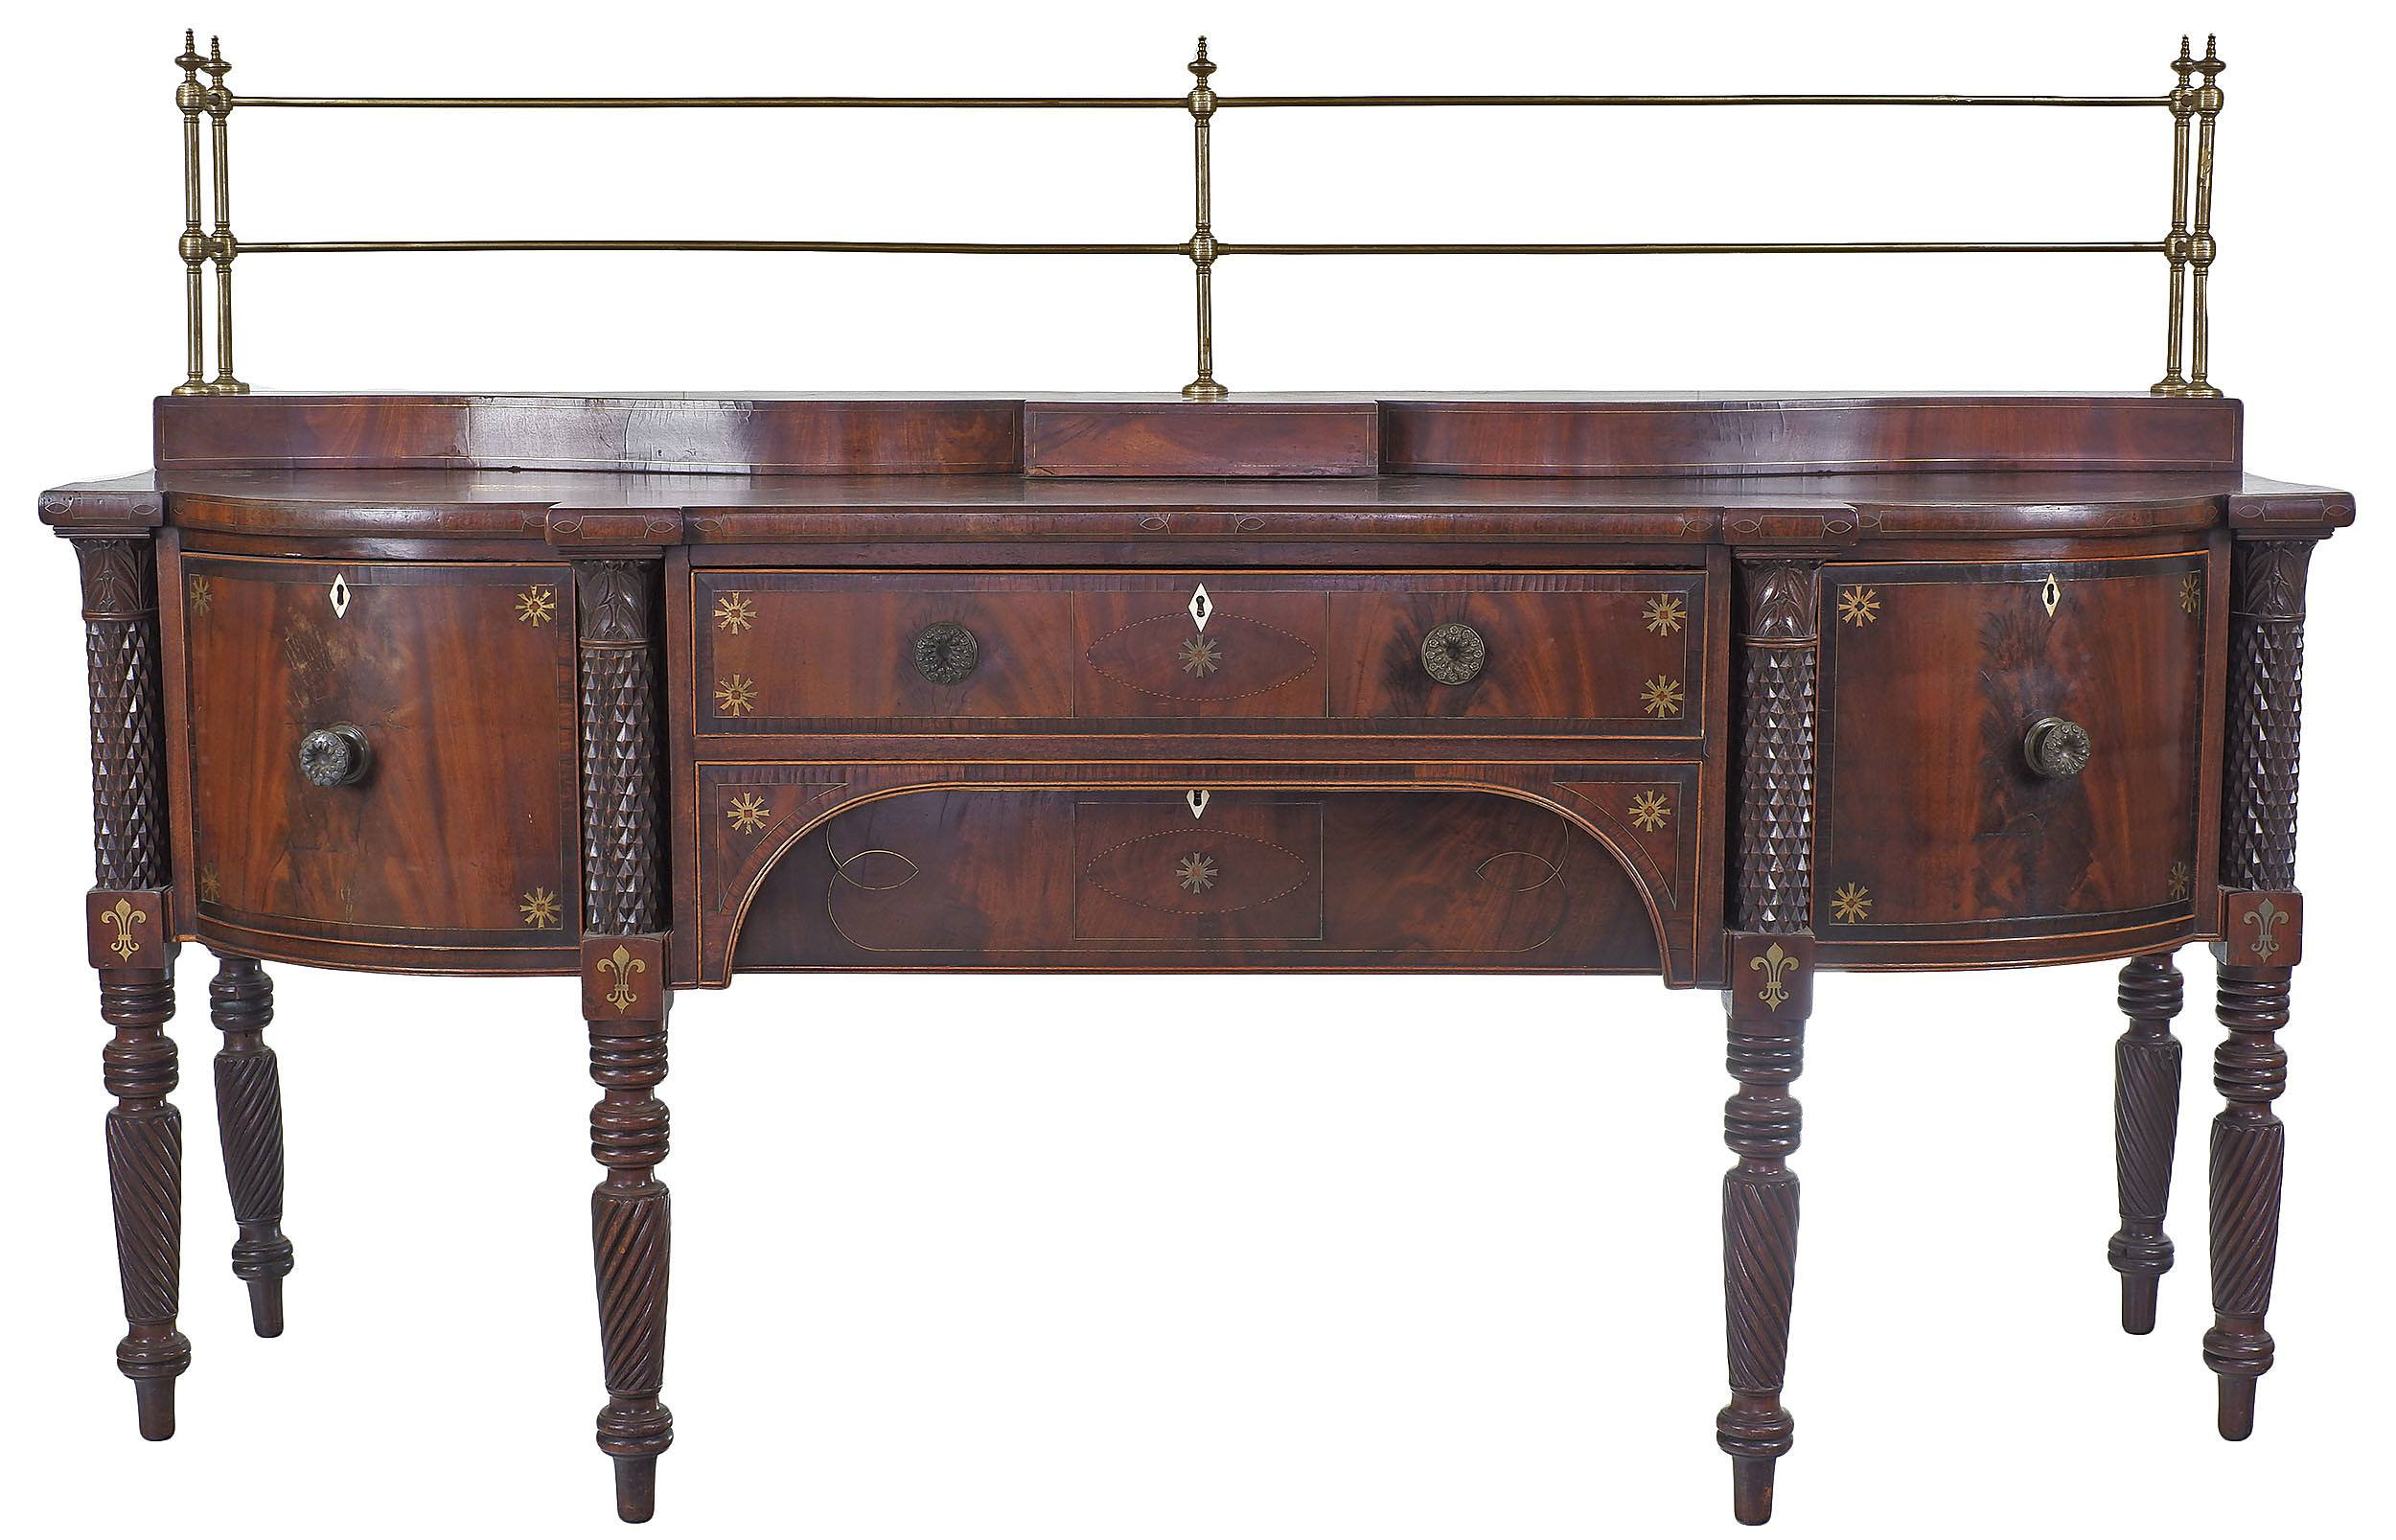 'Substantial George IV Brass Inlaid Mahogany Sideboard with Ivory Escutcheons and Ebony Boxwood and Rosewood Banding Circa 1830'